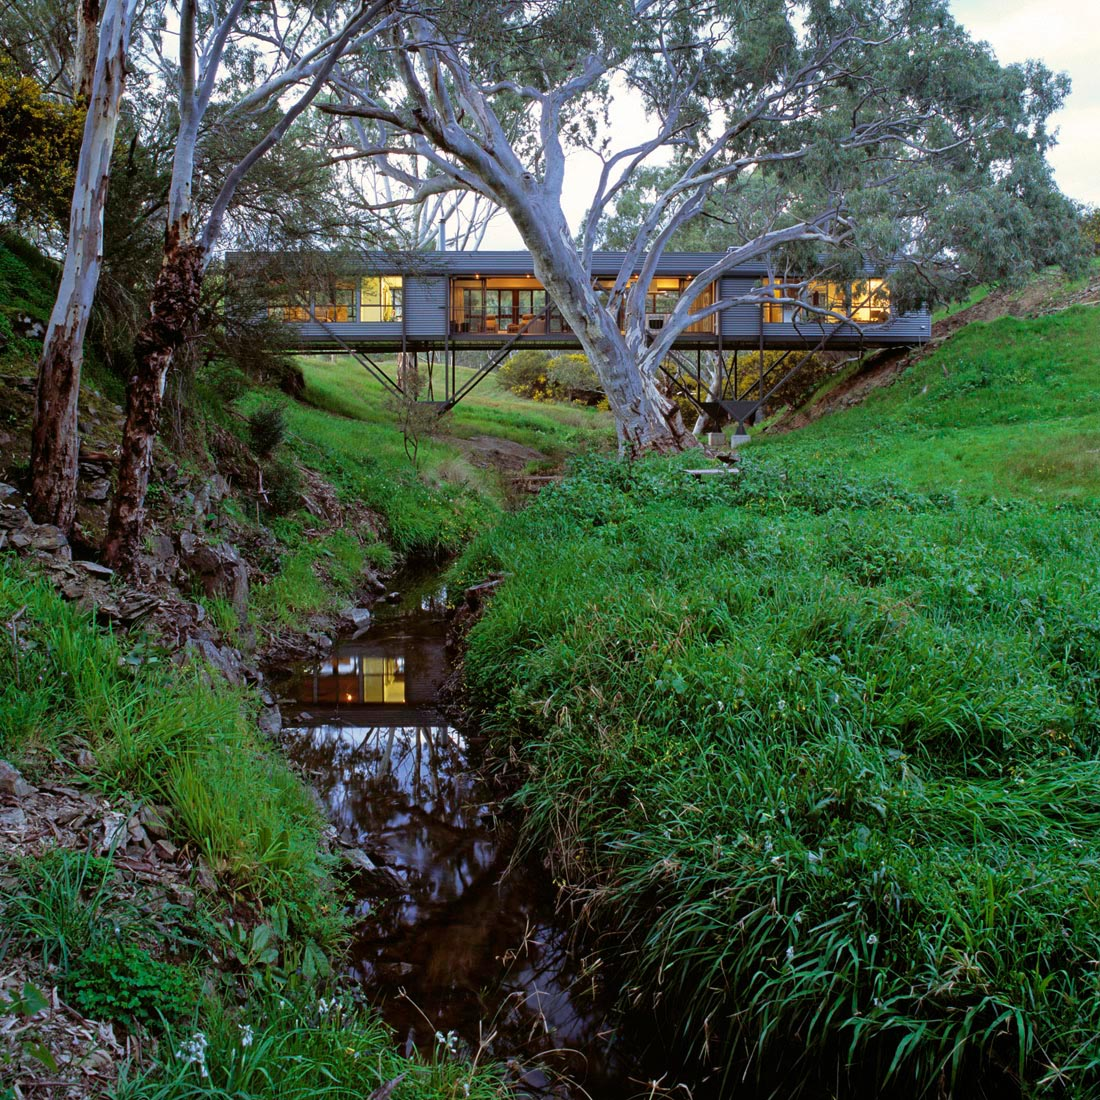 Contemporary Australian Home Architecture On Yarra River: Bridge House By Max Pritchard Architect